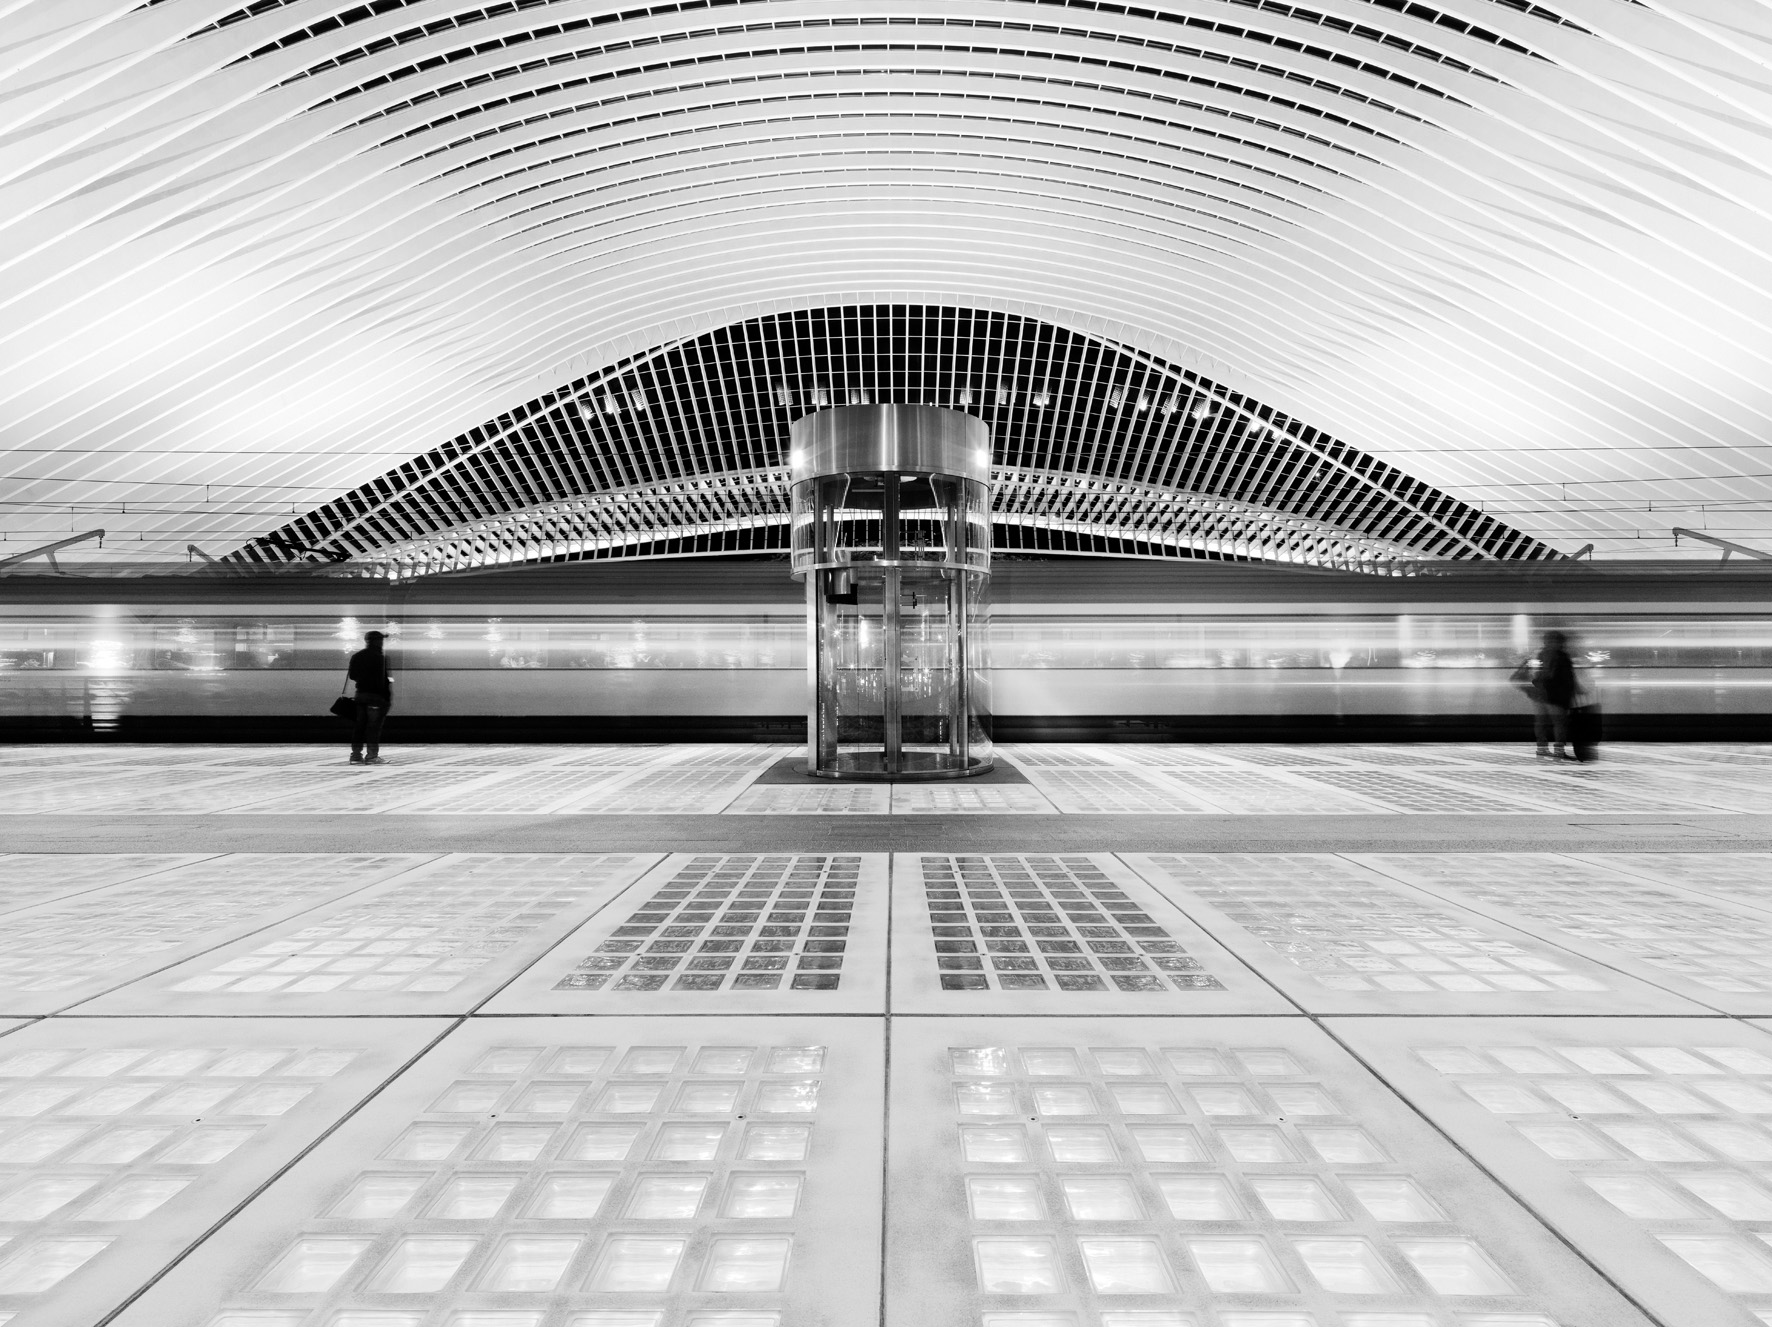 Photo © Image by Martin Schubert, Hasselblad Master 2014: Architectural,